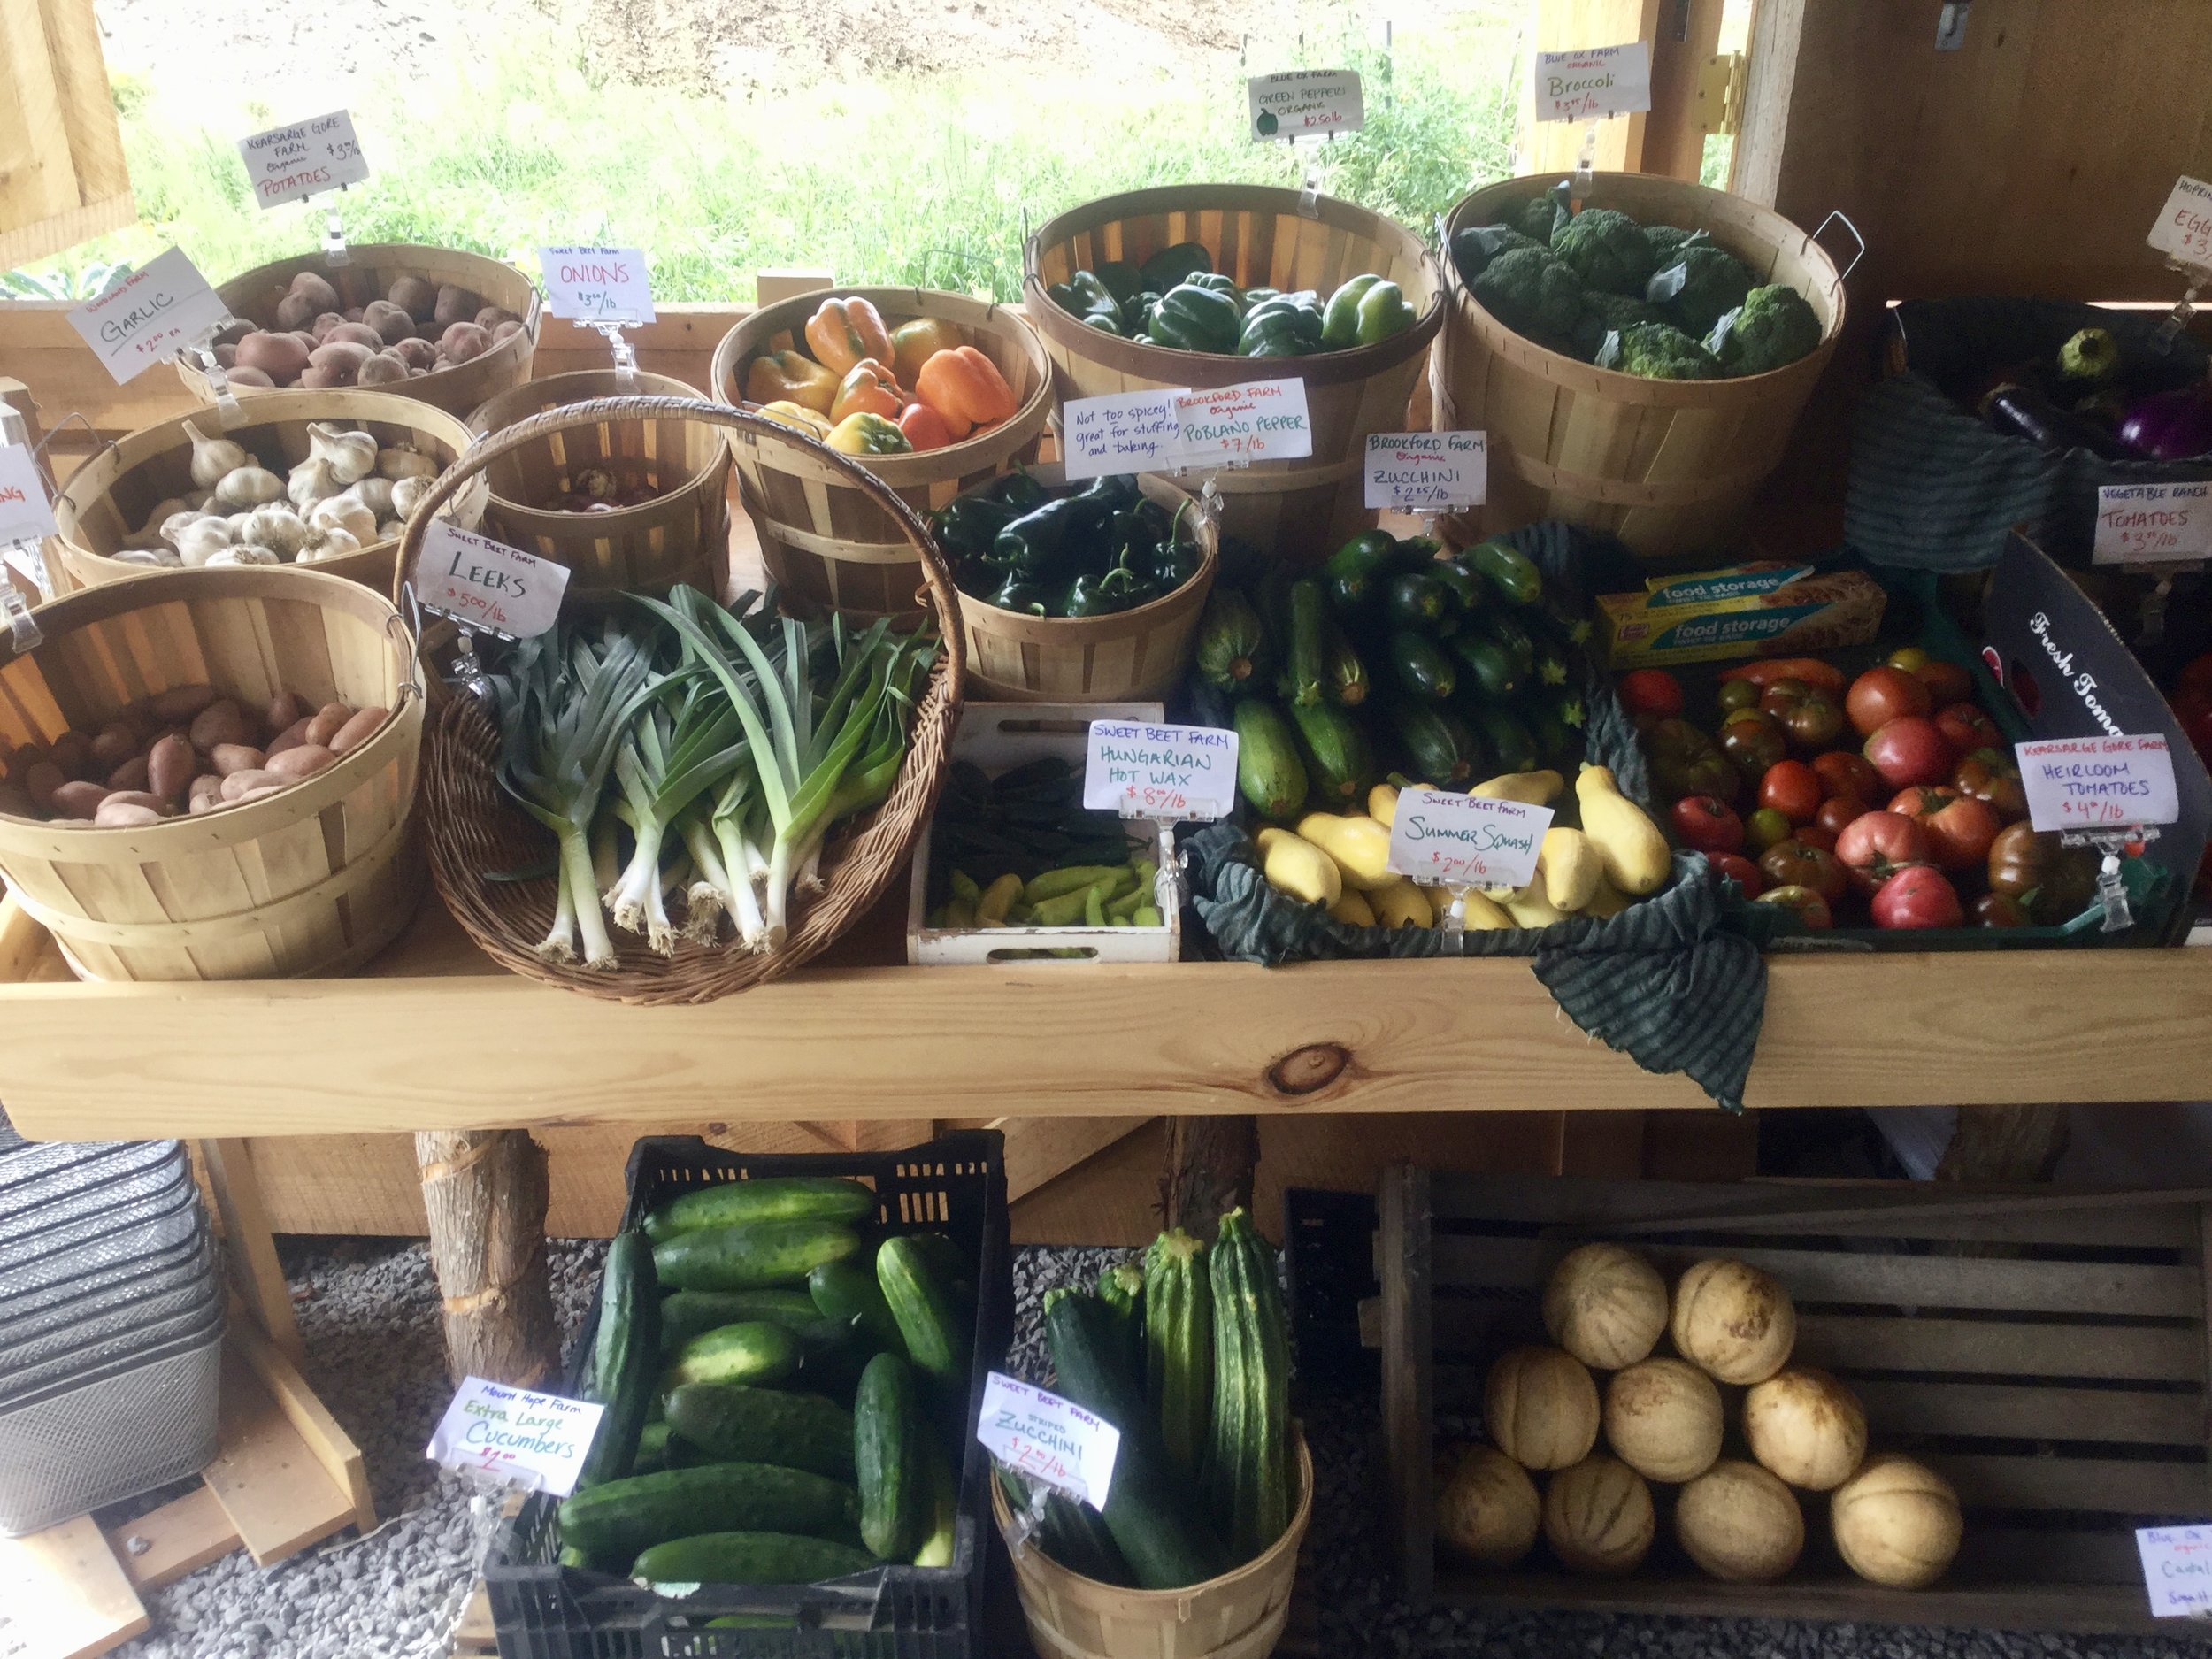 Our first attempt at selling produce - we've always had signs on each and every item telling the story of the source!